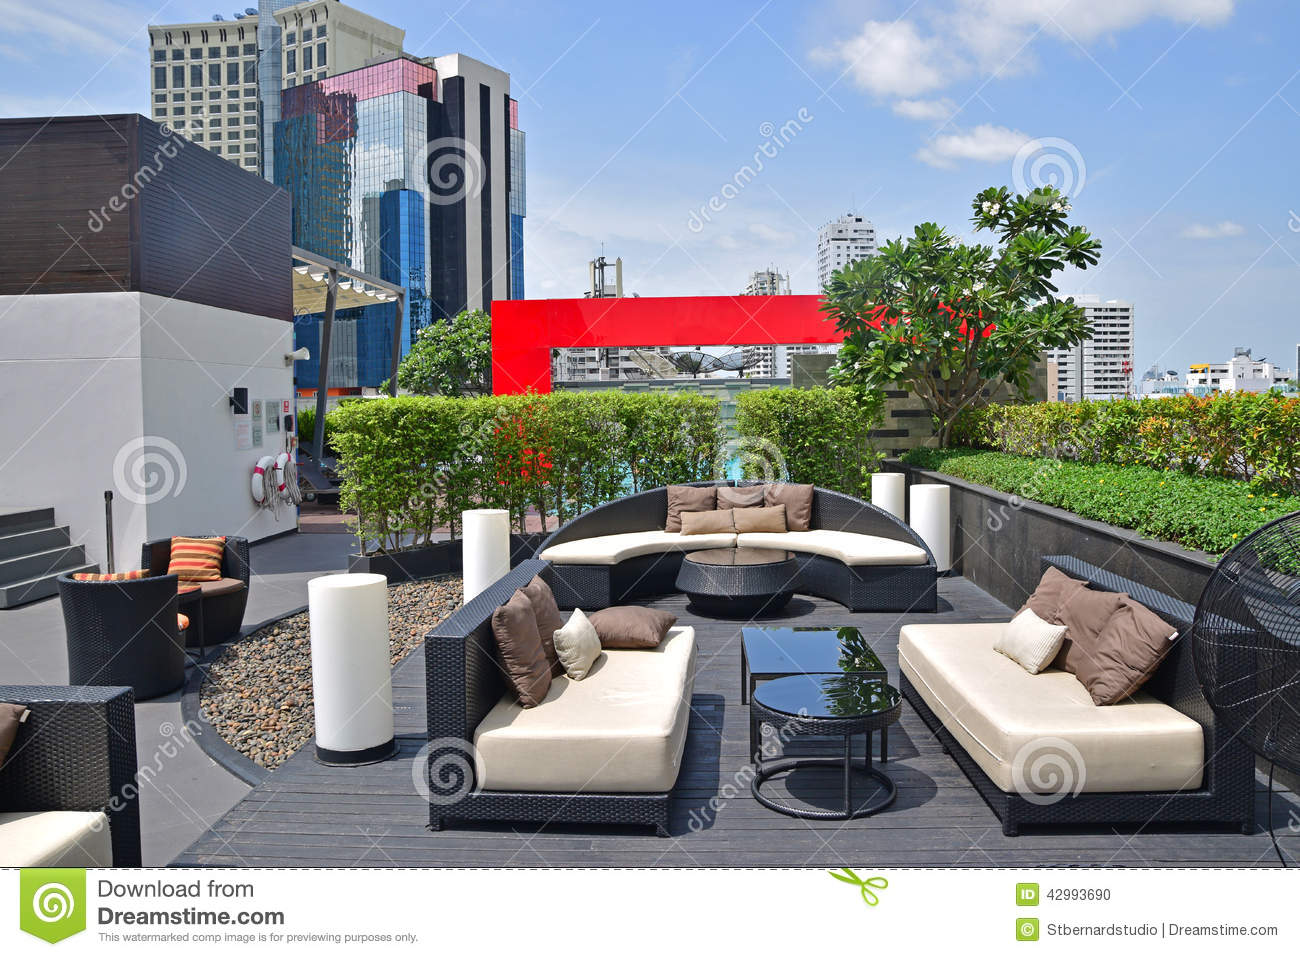 all weather wicker outdoor chairs zuma high chair beautiful rooftop settings for relaxation and recreational activities stock photo - image: 42993690